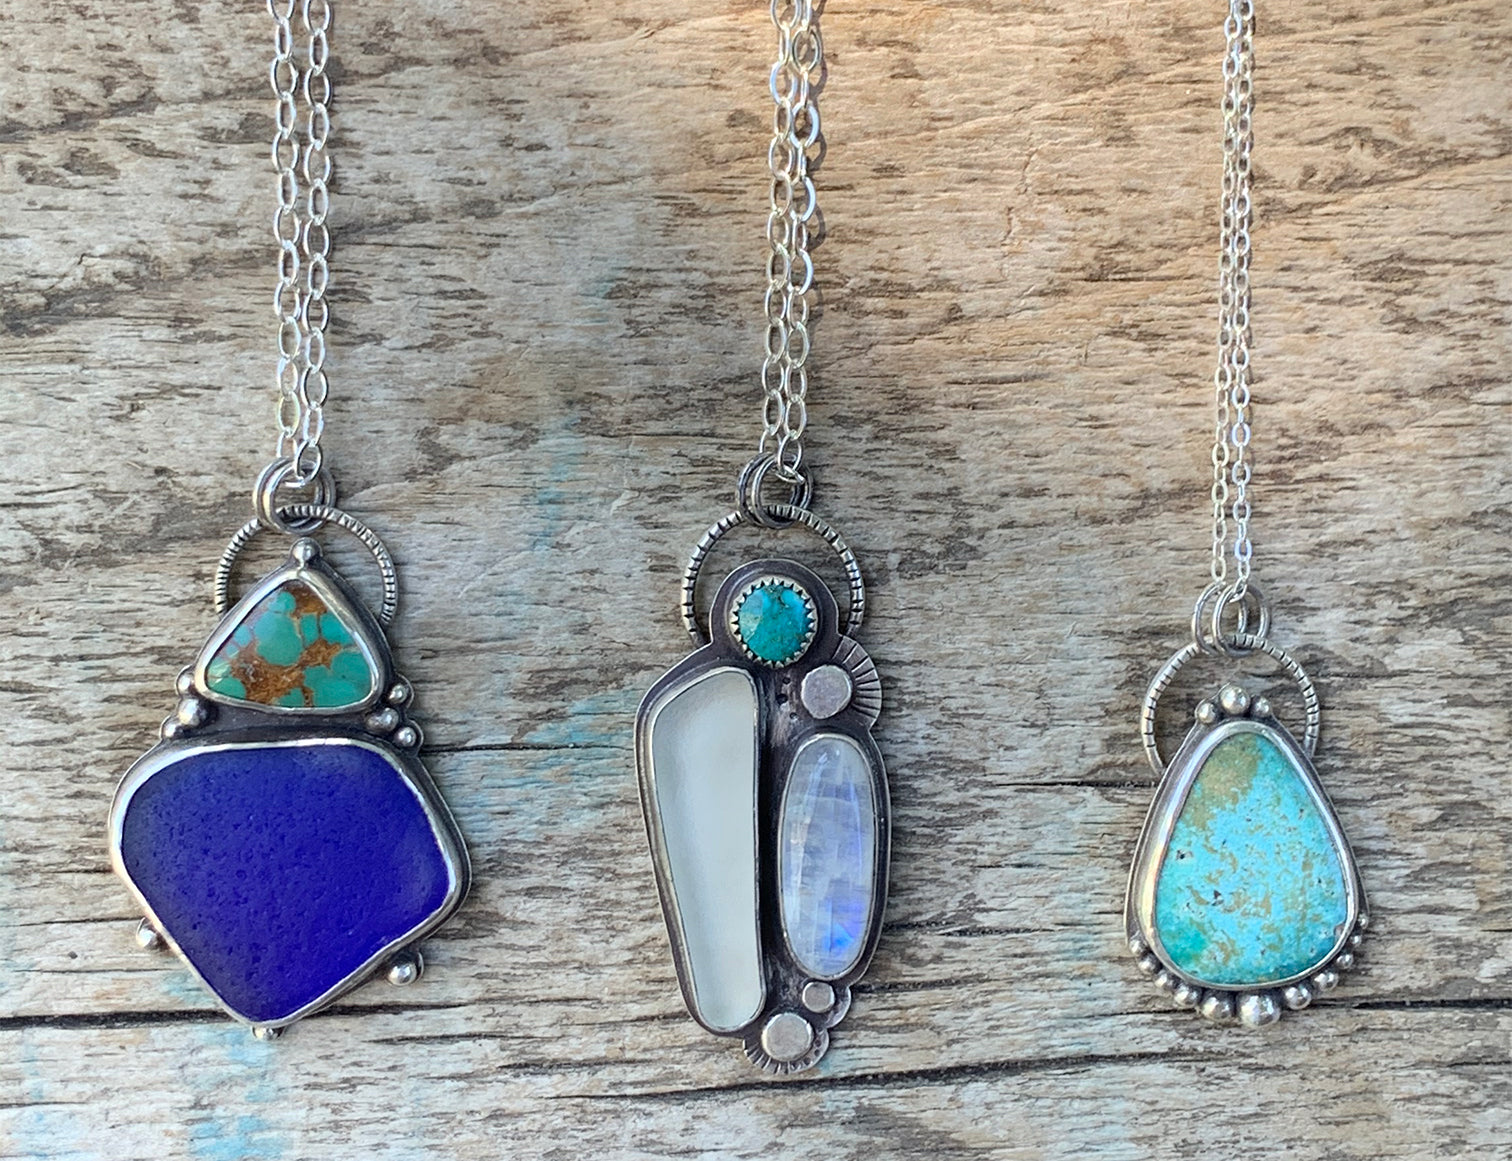 Seaglass and Stones